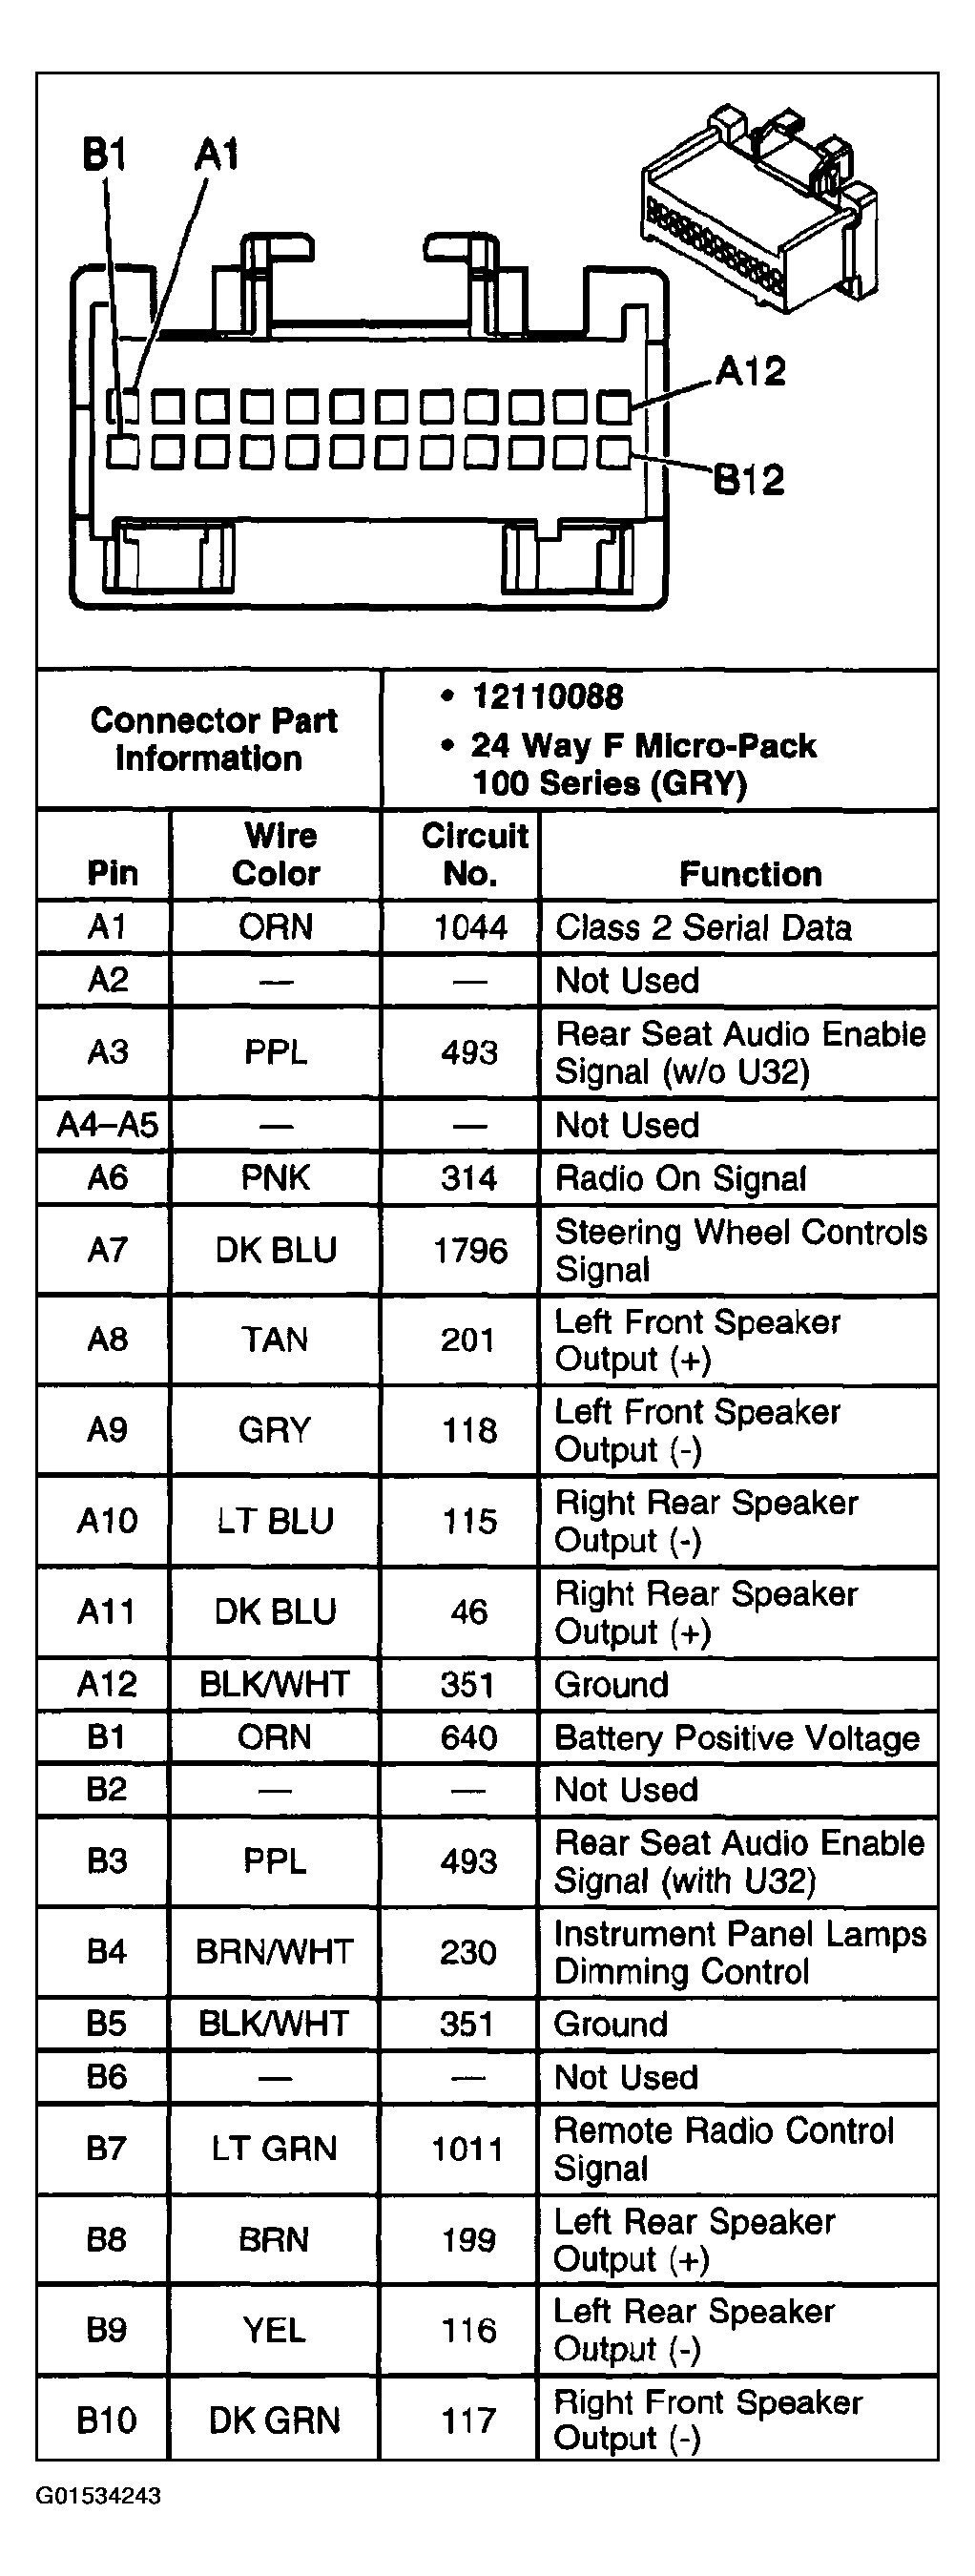 2002 Chevy Venture Radio Wiring Diagram Wiring Diagram General A General A Emilia Fise It